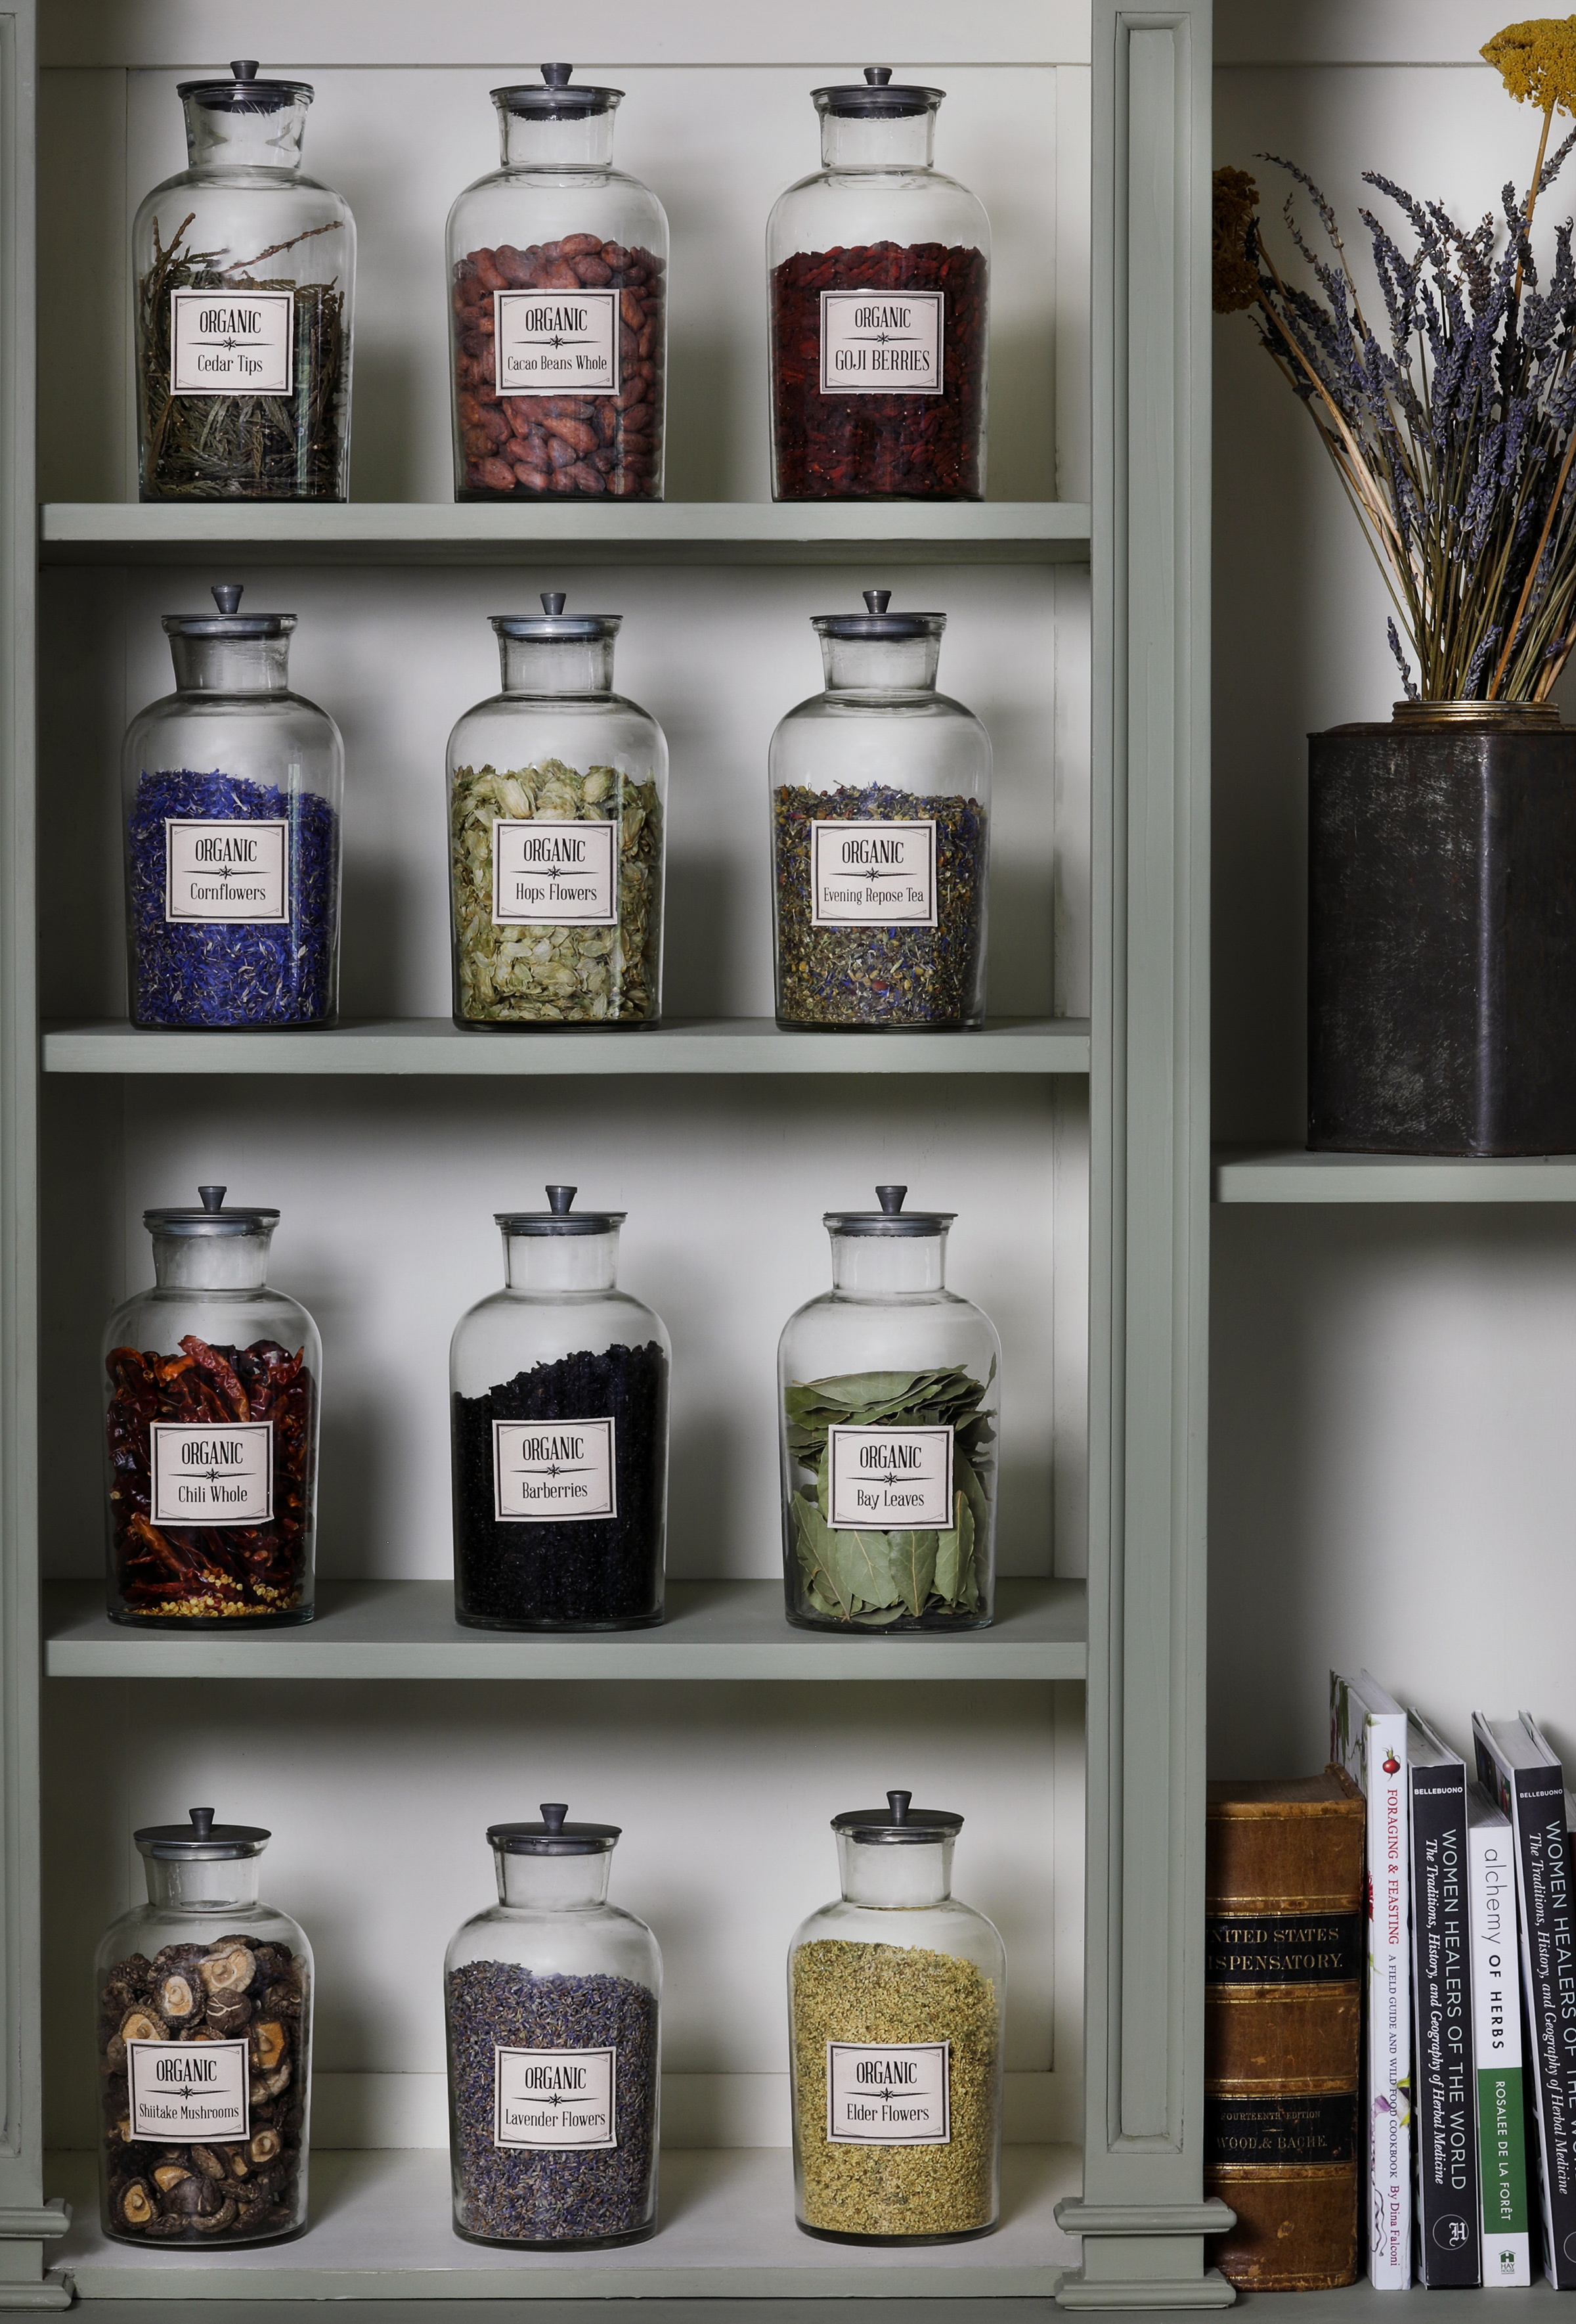 Green book case and shelving with large glass containers of dried herbs out for display